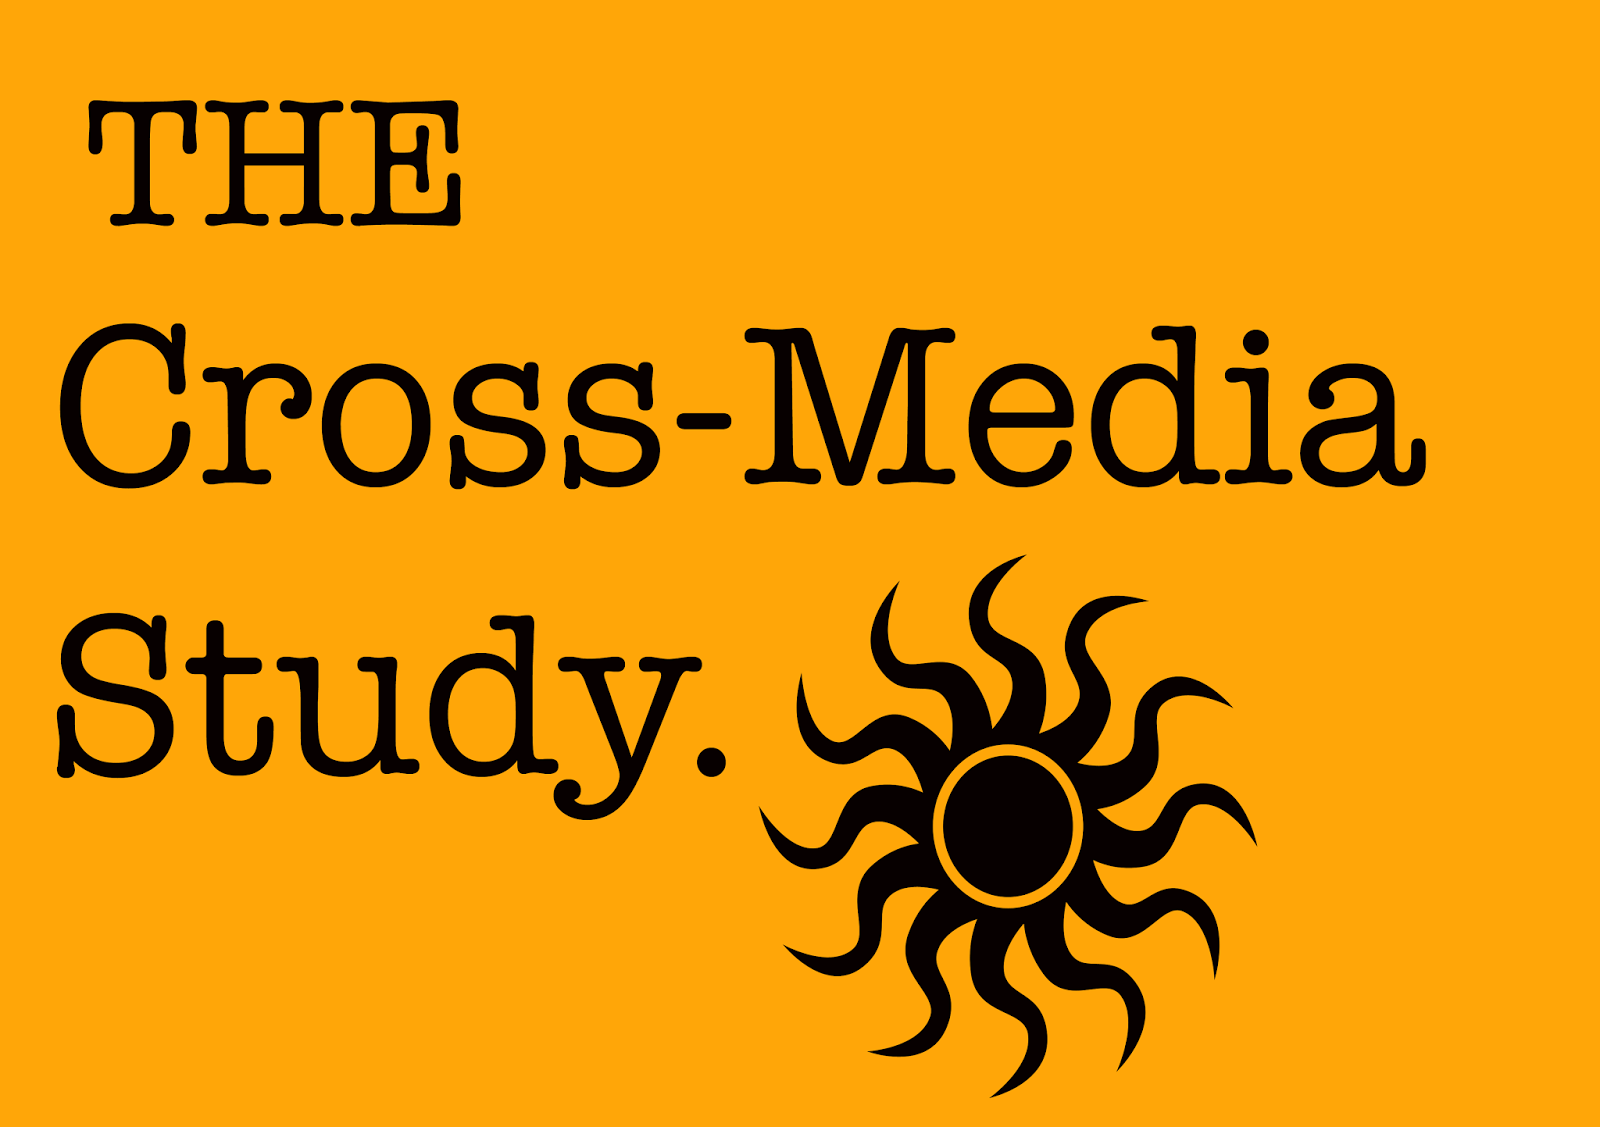 fishymedia resources for a as media studies  session was to make sure that students are completely aware of the potential content that can be used to construct the first cross media study essay